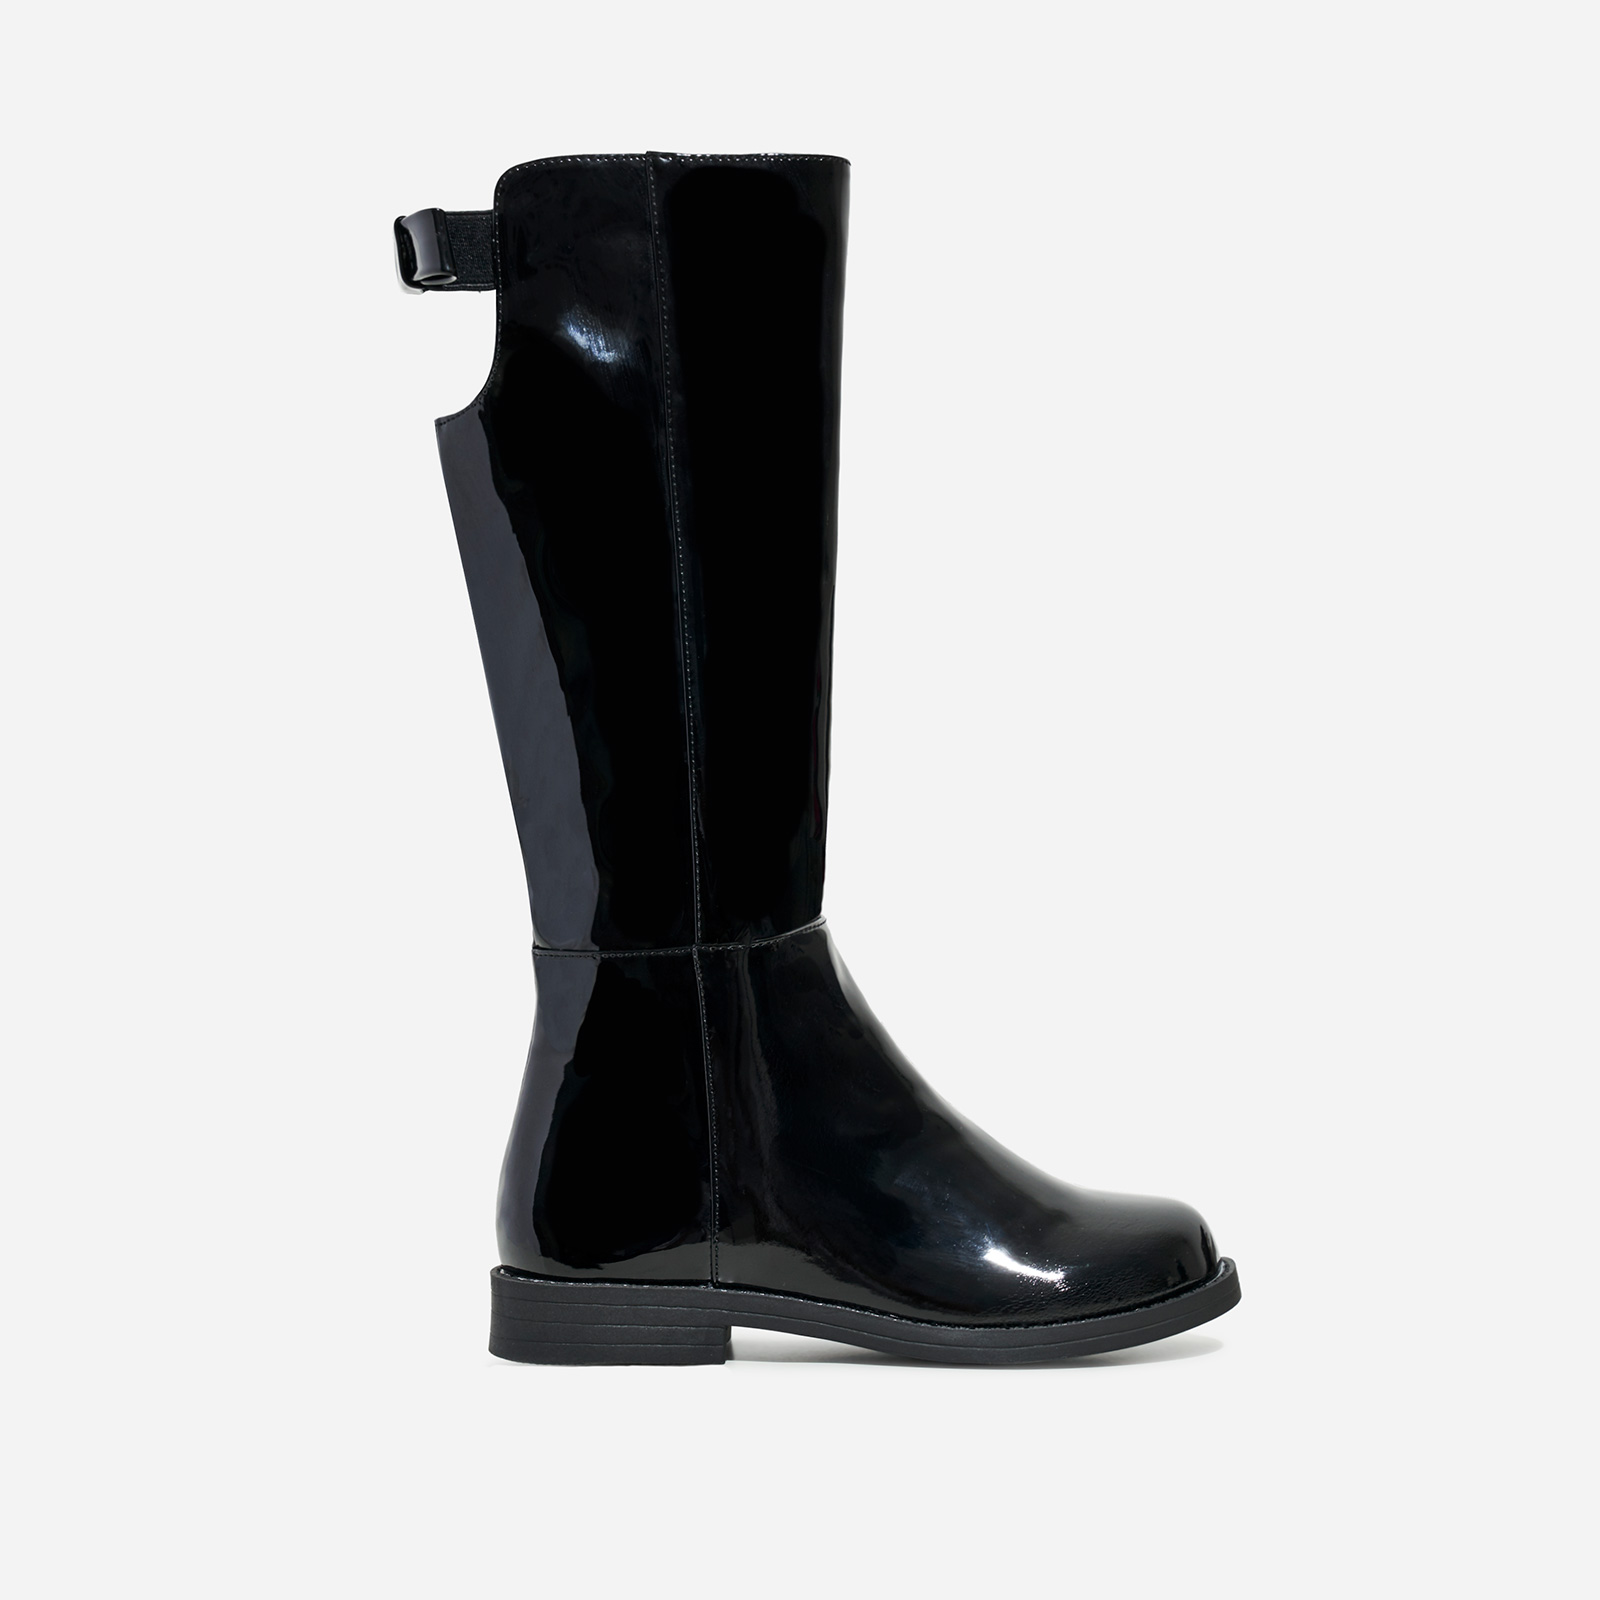 Flossy Girl's Bow Detail Knee High Long Boot In Black Patent